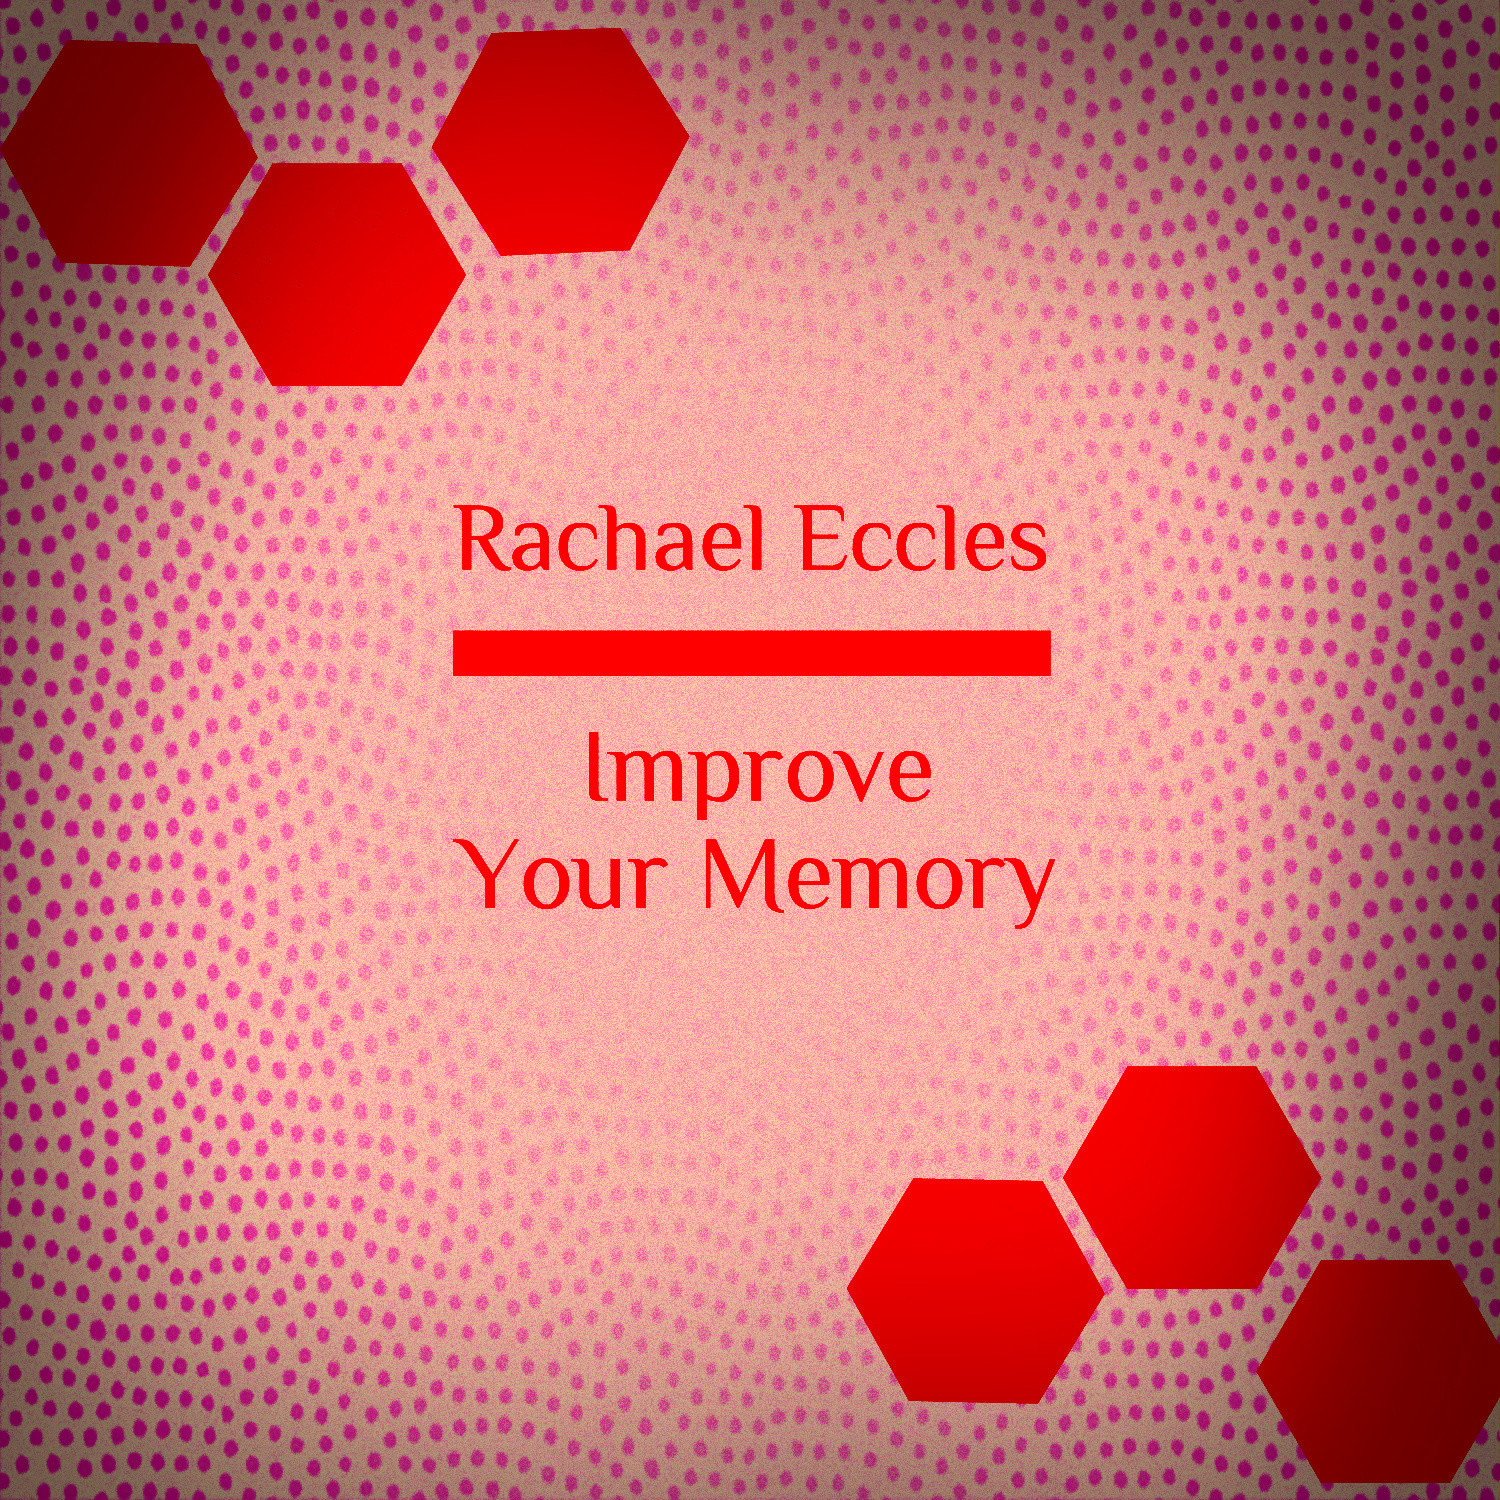 Improve Your Memory, 2 track Hypnotherapy Hypnosis MP3 download